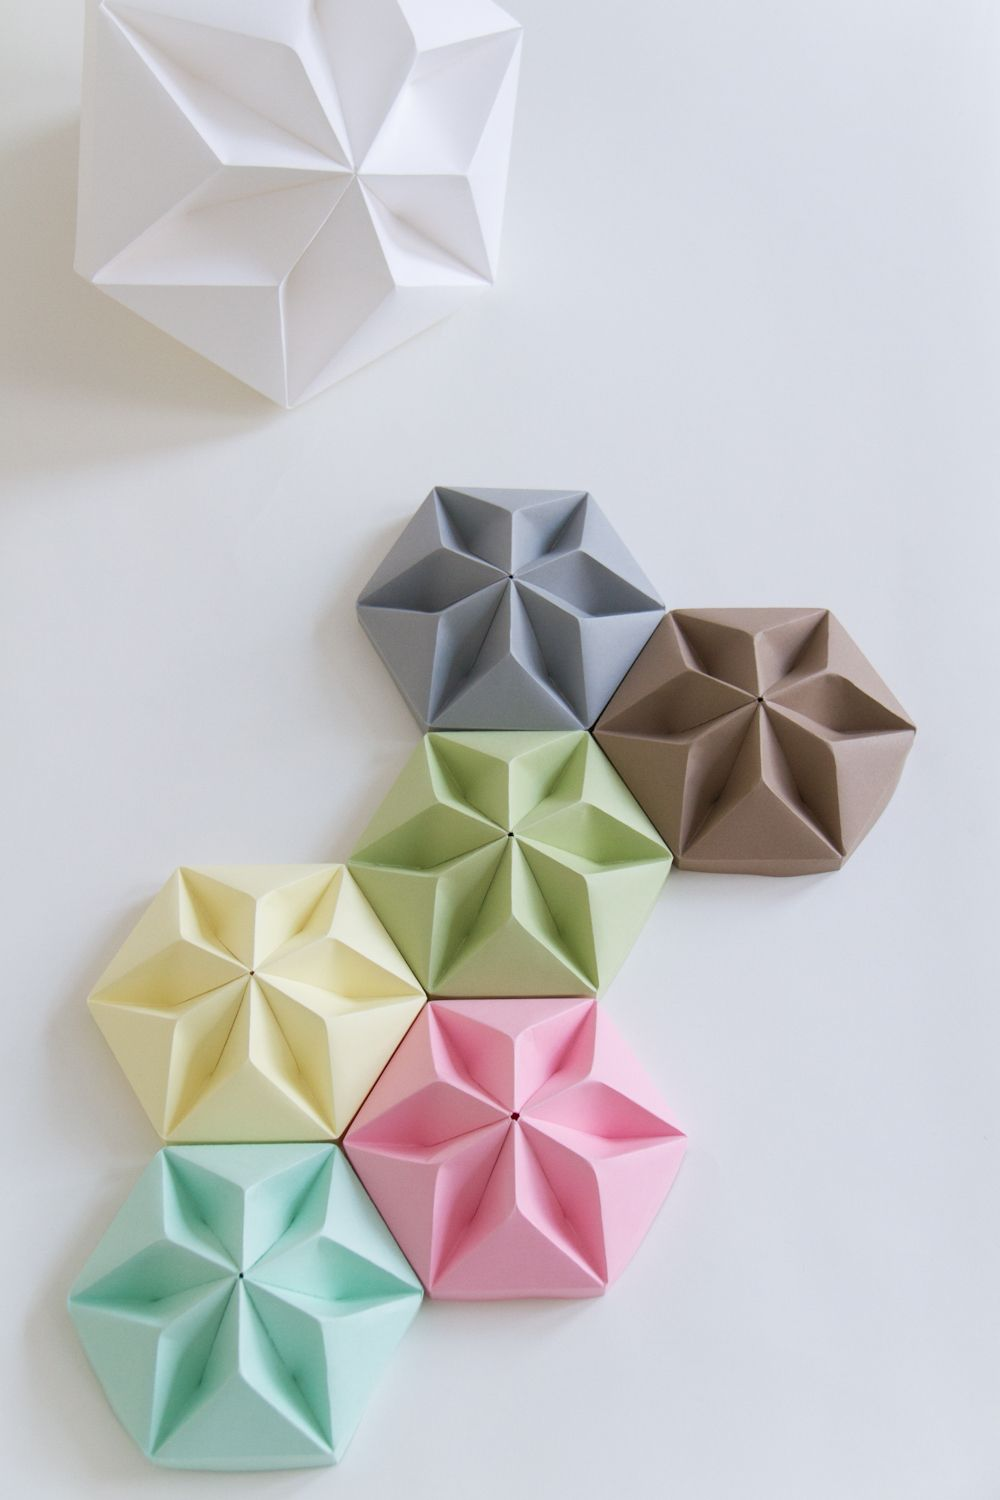 15+ Origami DIY Kits to Help You Master the Ancient Art of Paper ... | 1500x1000